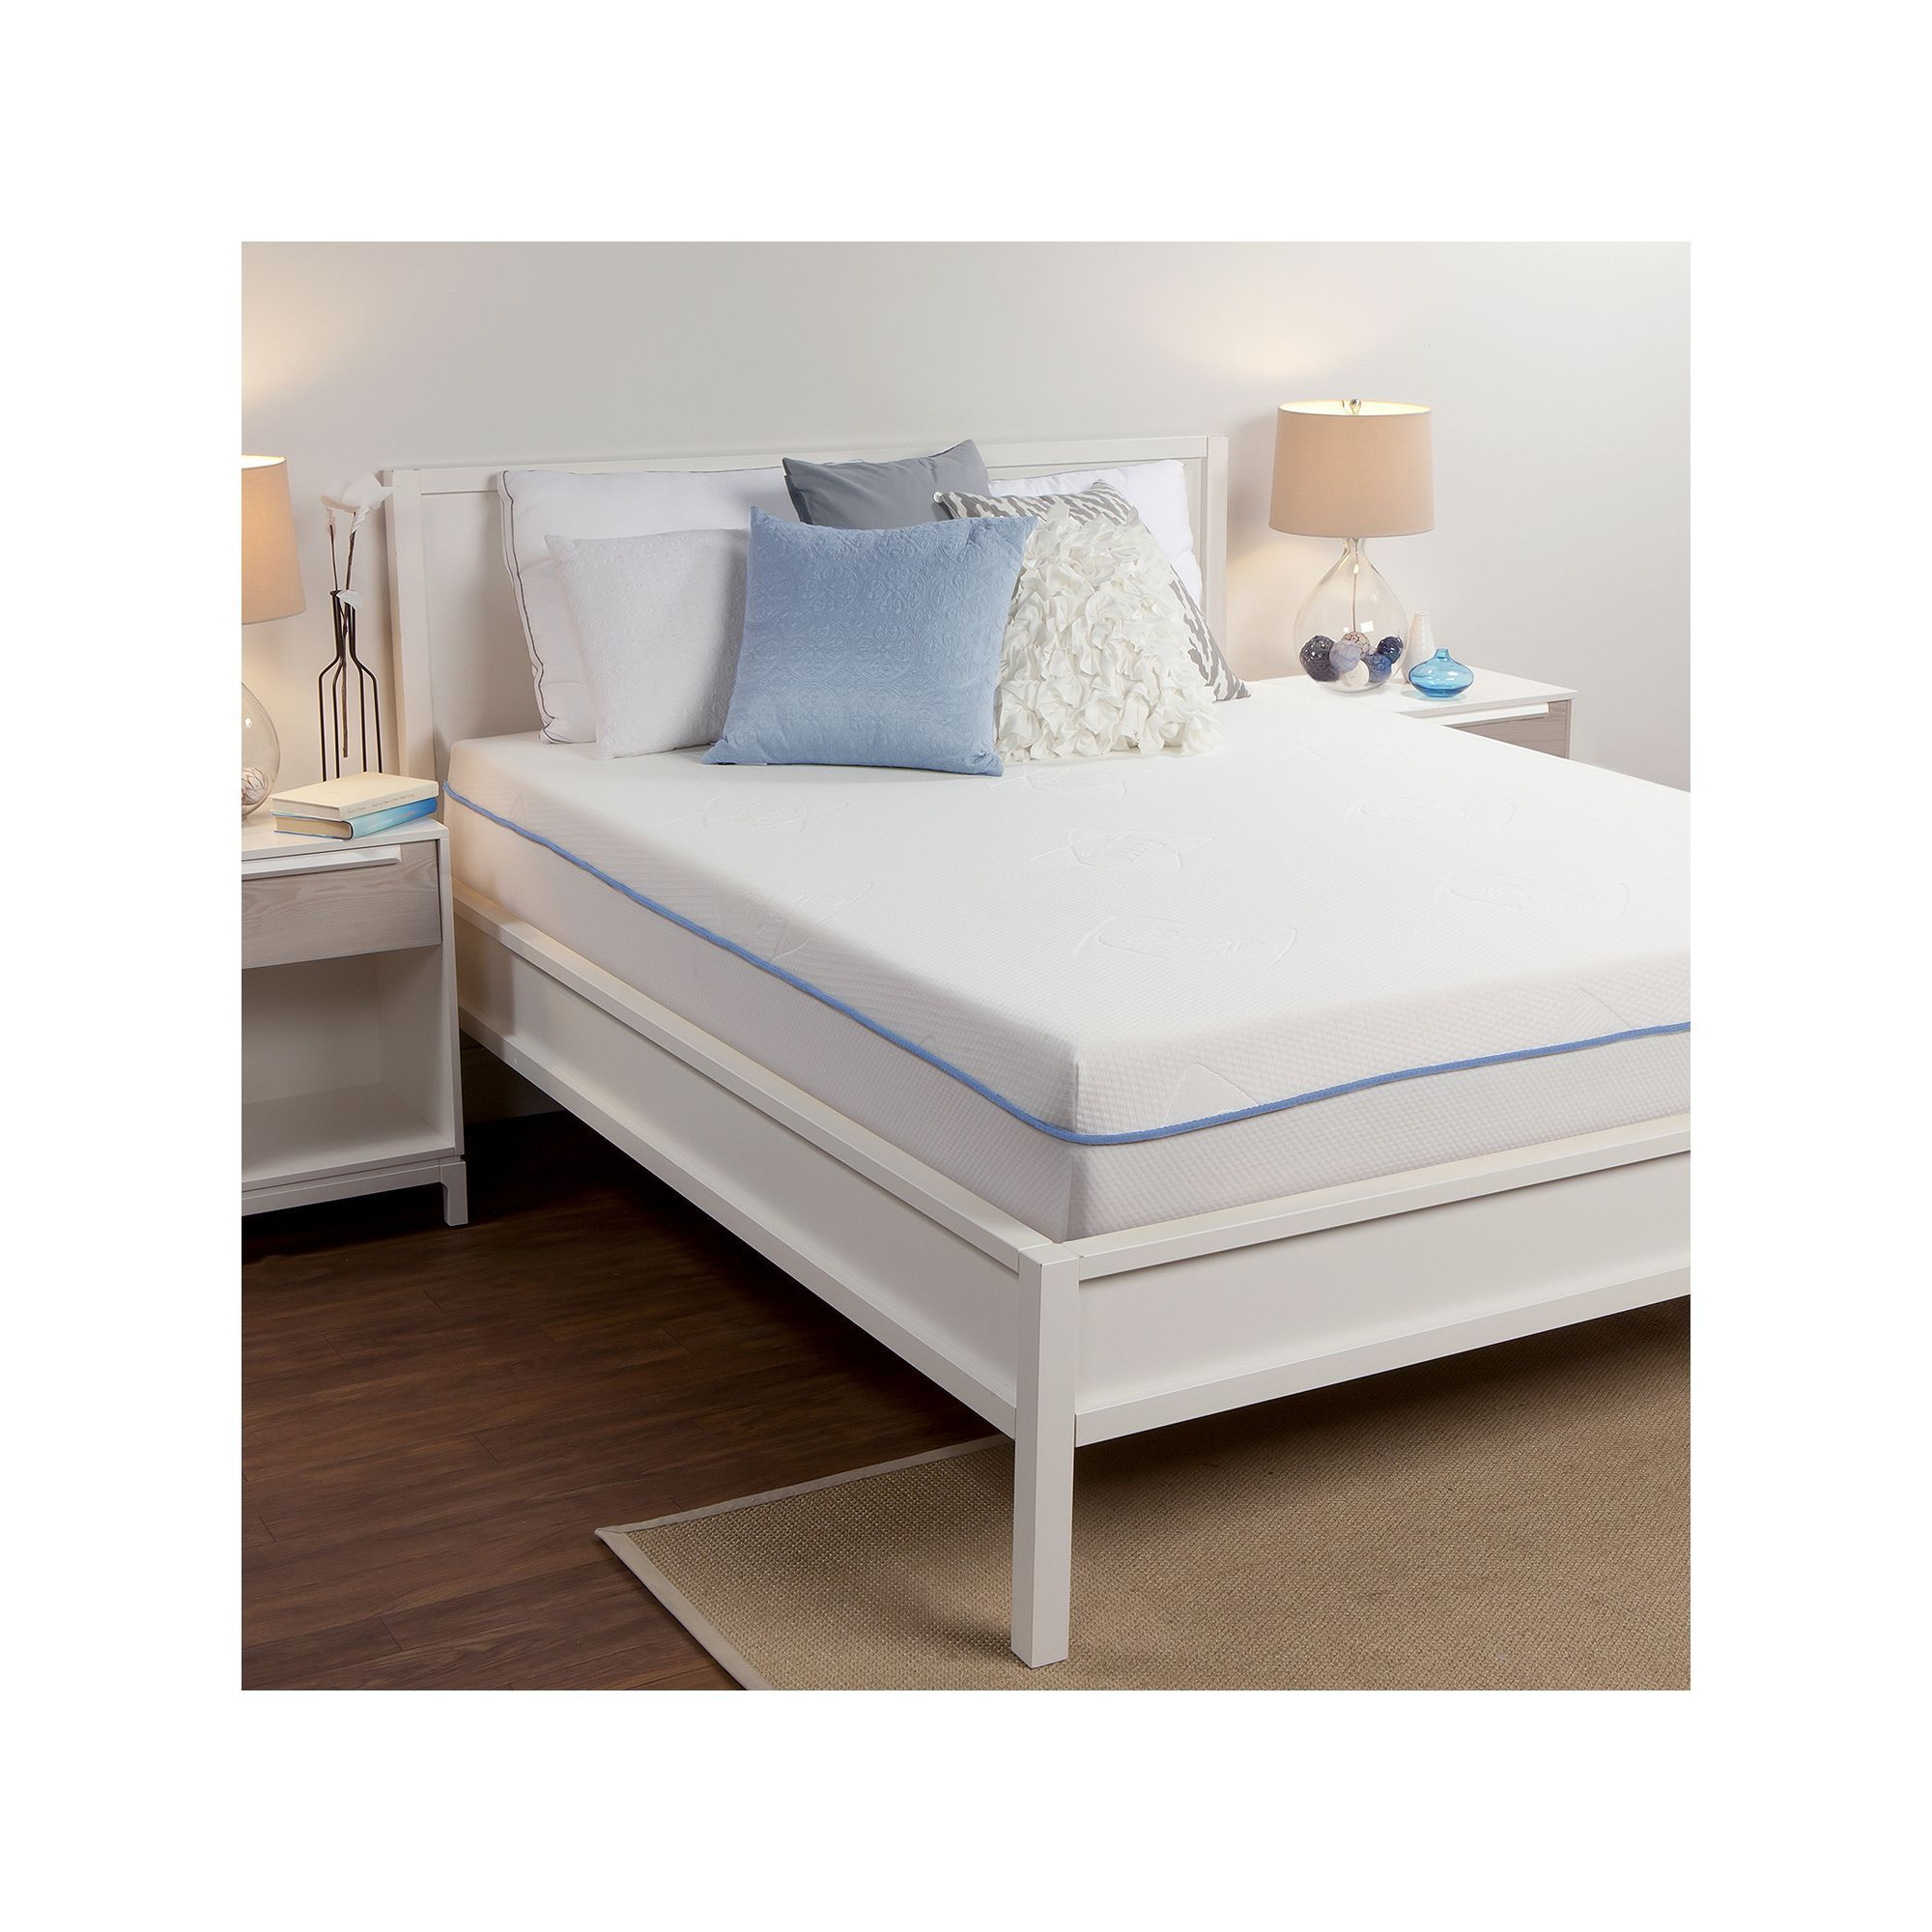 sealy 8 in memory foam mattress white foam mattress memory foam